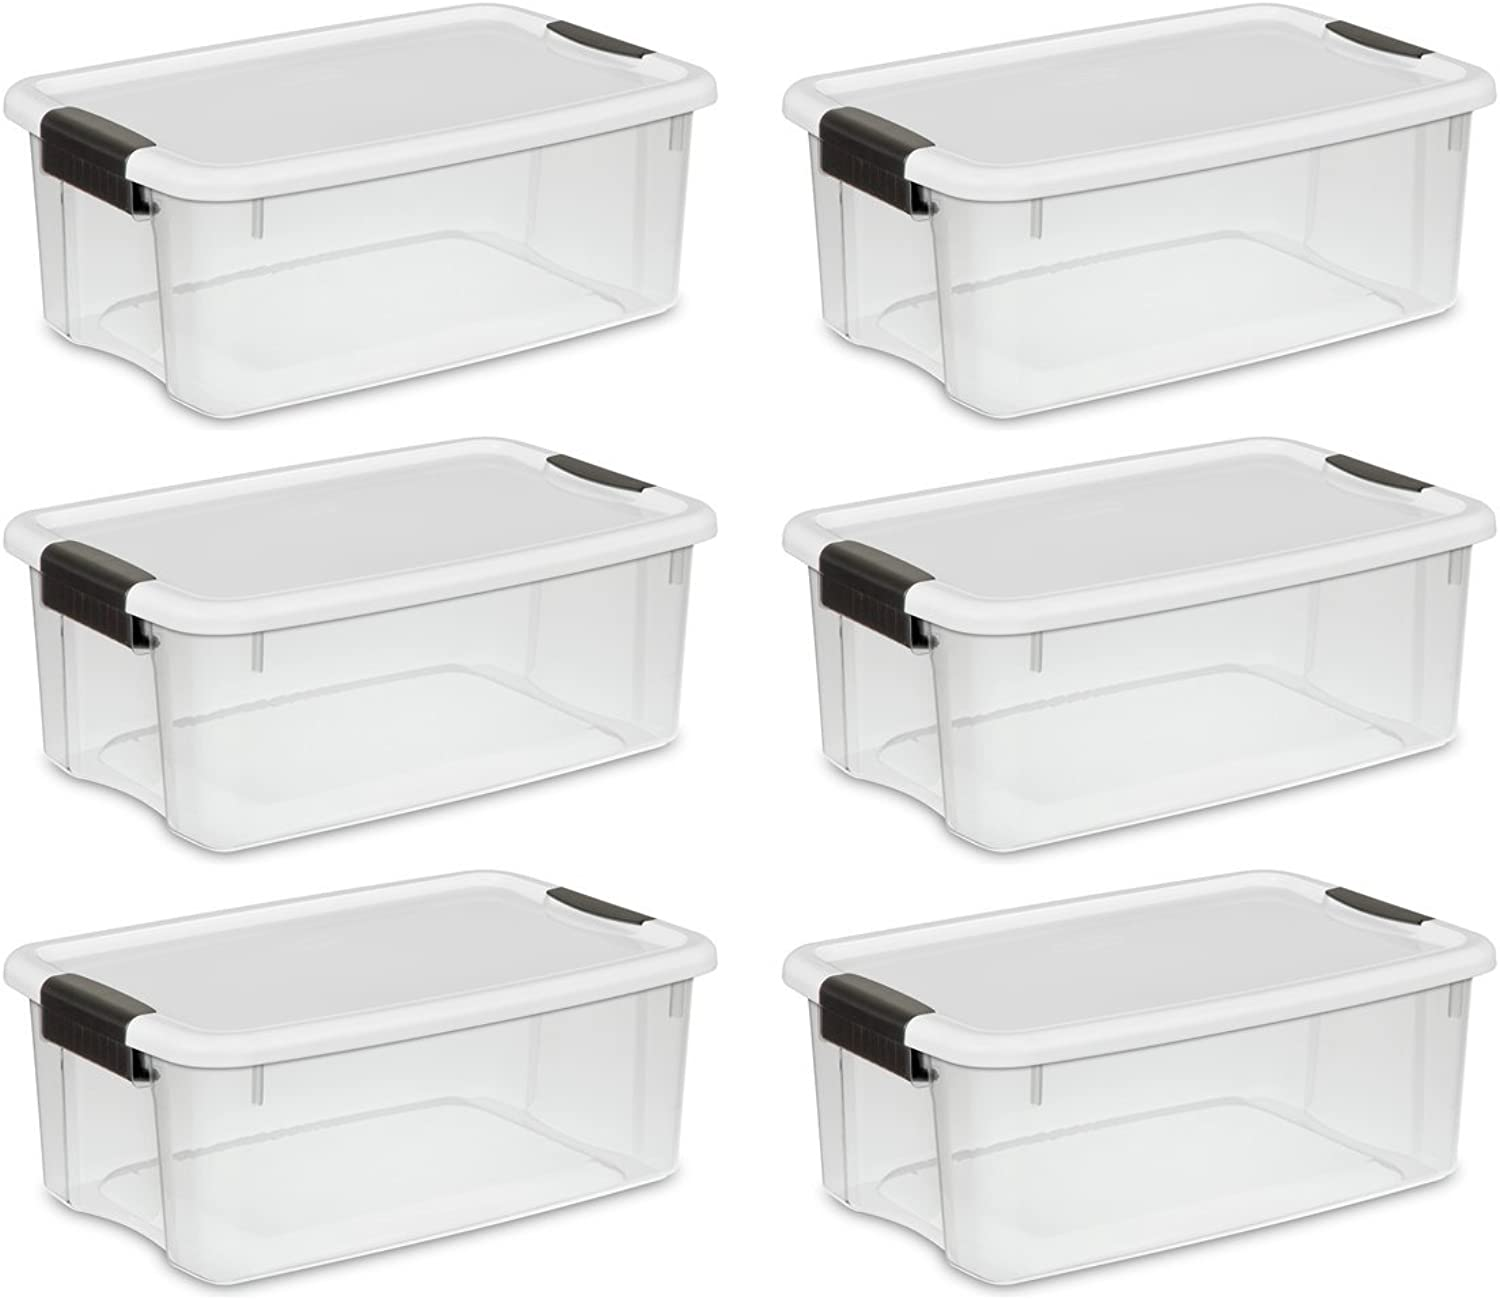 Sterilite 19849806 18 Quart 17 Liter Ultra Latch Box, Clear with a White Lid and Black Latches, 6-Pack